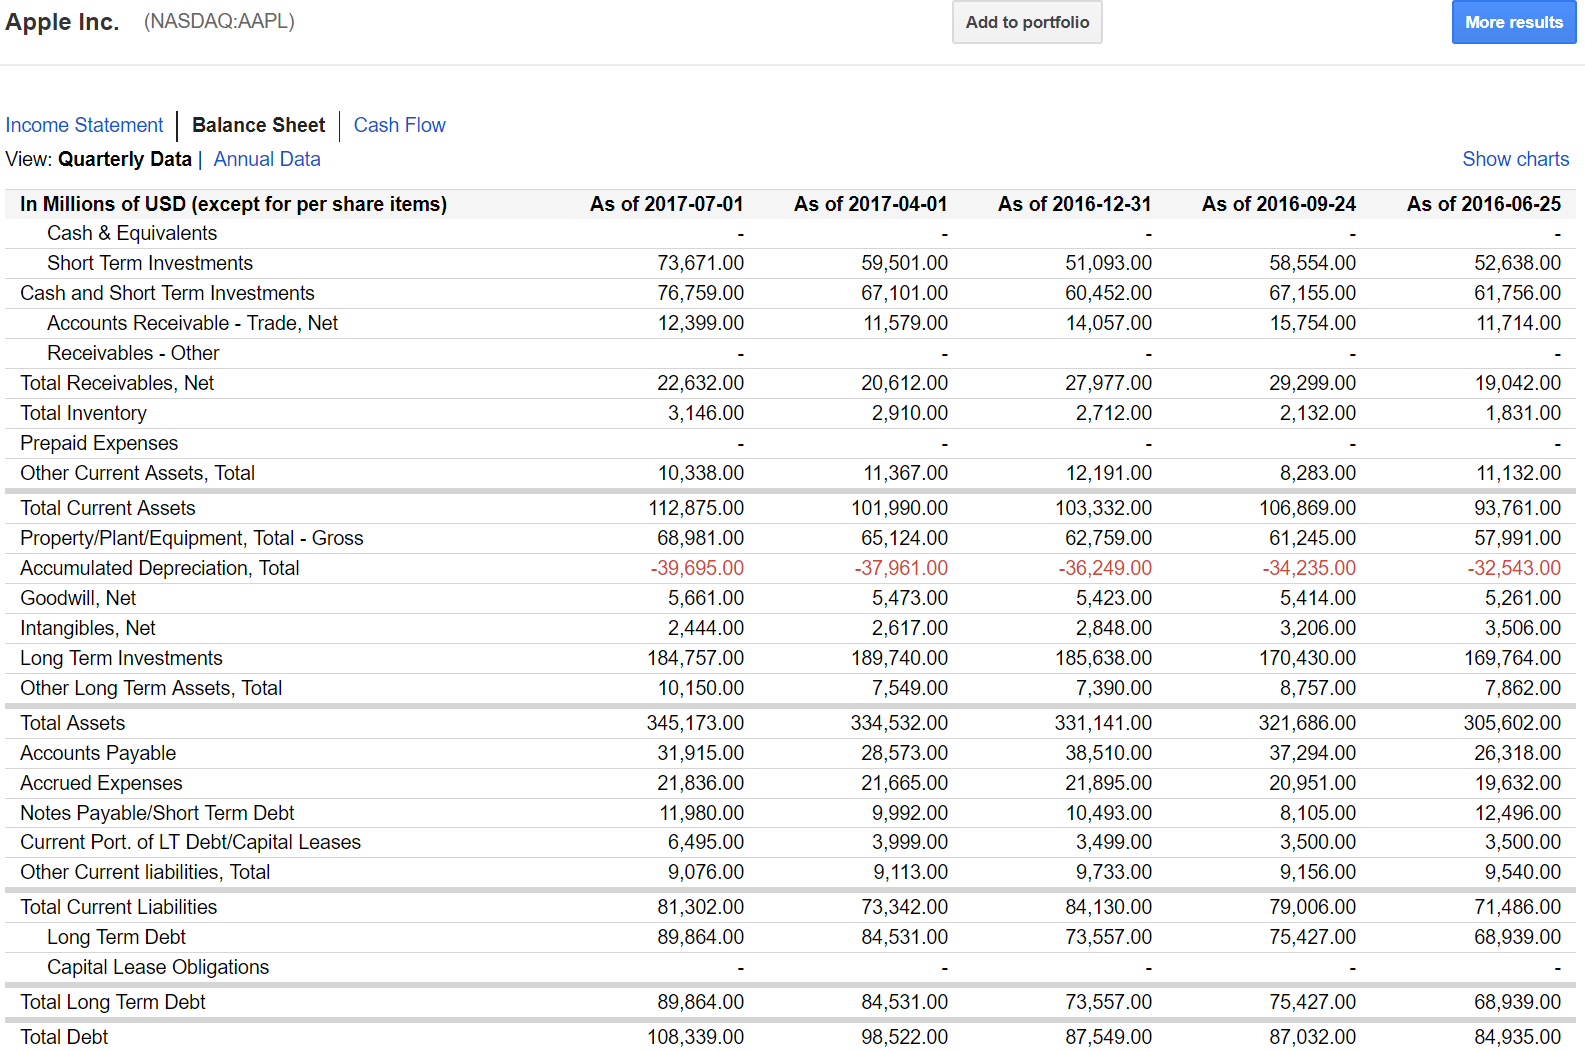 apple balance sheet analysis Get the detailed quarterly/annual income statement for apple inc (aapl) find out the revenue, expenses and profit or loss over the last fiscal year.